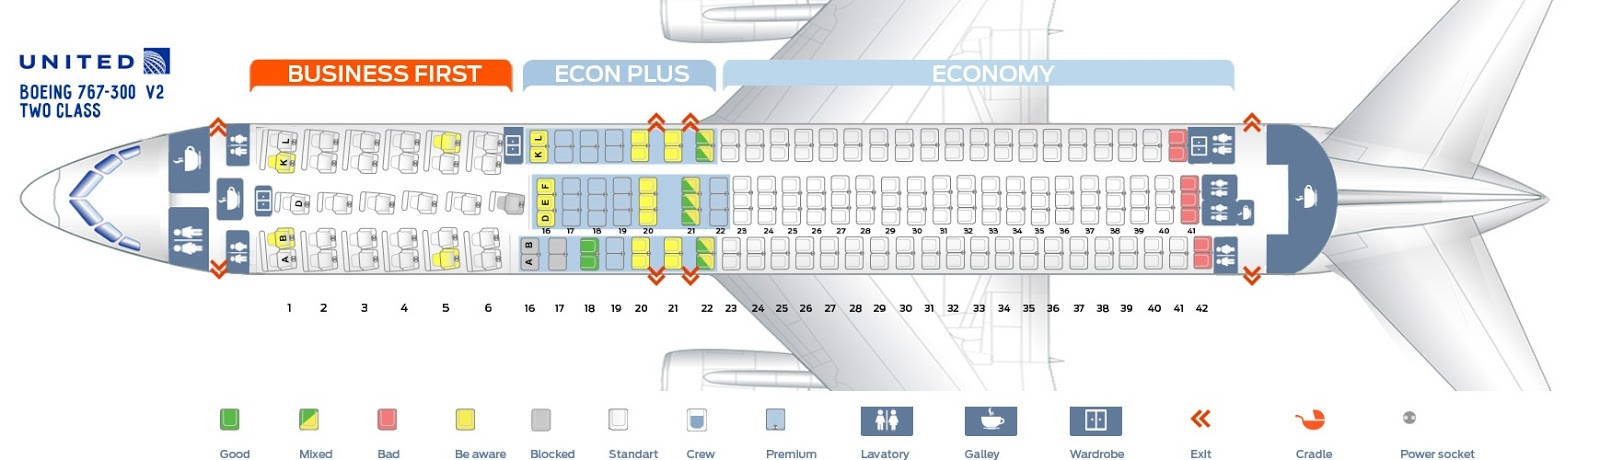 Inspirational Boeing 767-300 Seat Map - Seat Inspiration on seatguru boeing 788 seat map, pan am seat map, privatair seat map, bulgarian air seat map, dragonair seat map, gulf air seat map, aircraft 76w seat map, air macau seat map, atlas air seat map, iran air seat map, saudia seat map, air tahiti seat map, xl airways france seat map, easyjet seat map, airline seat map, red wings seat map, first air seat map, air asia seat map, airberlin seat map, air india 777-300er seat map,